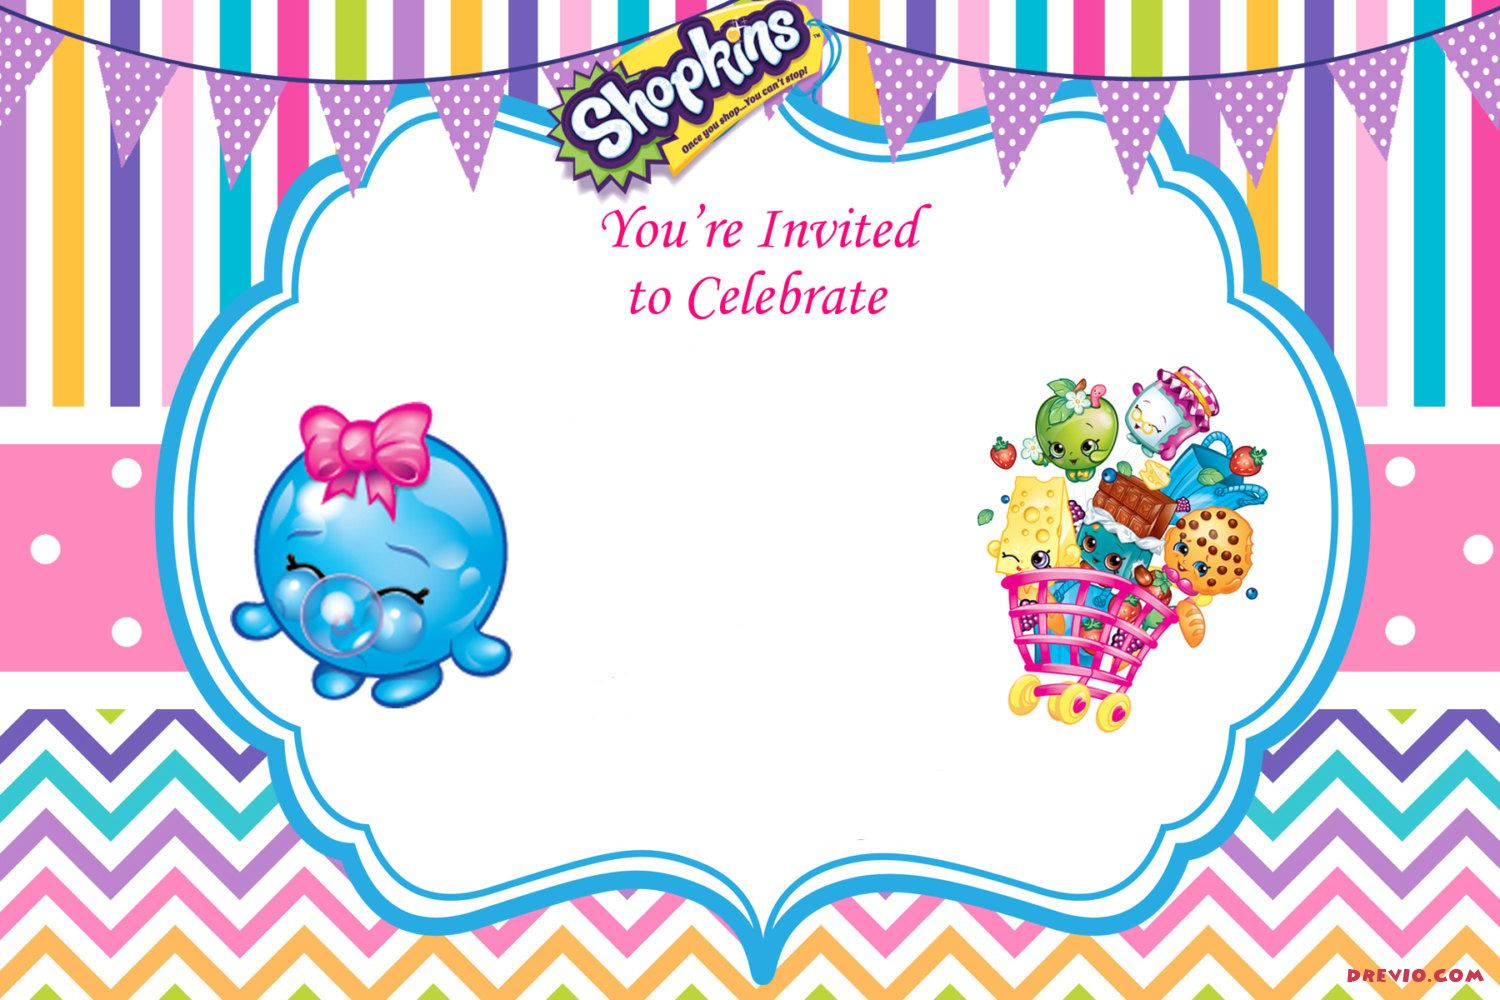 image about Shopkins Printable Invitations known as Up to date - Absolutely free Printable Shopkins Birthday Invitation